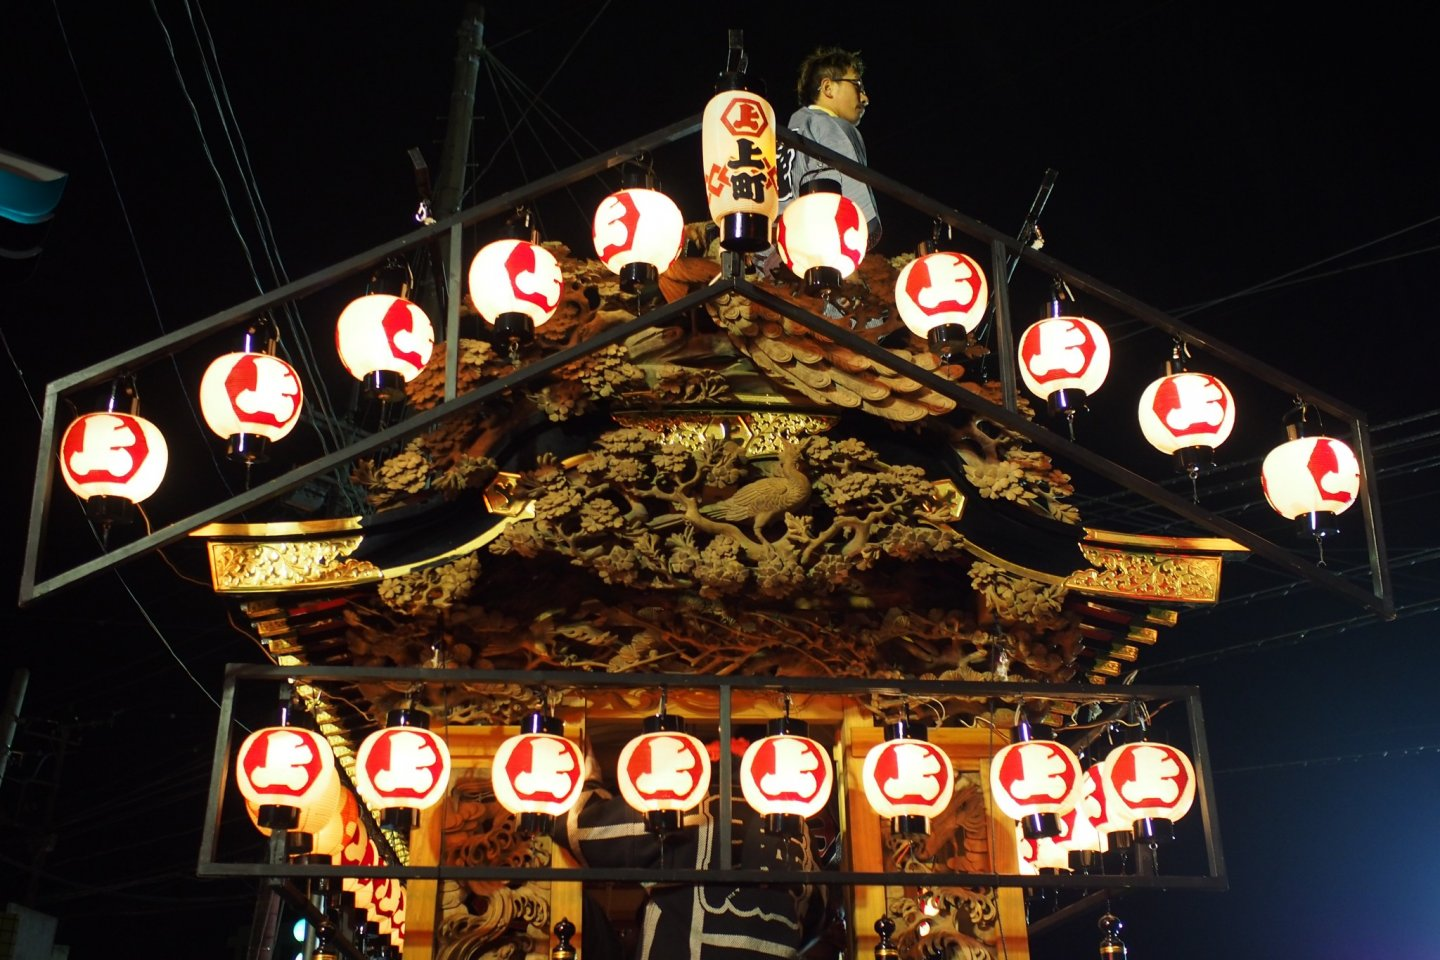 The ornate carvings on the Yatai